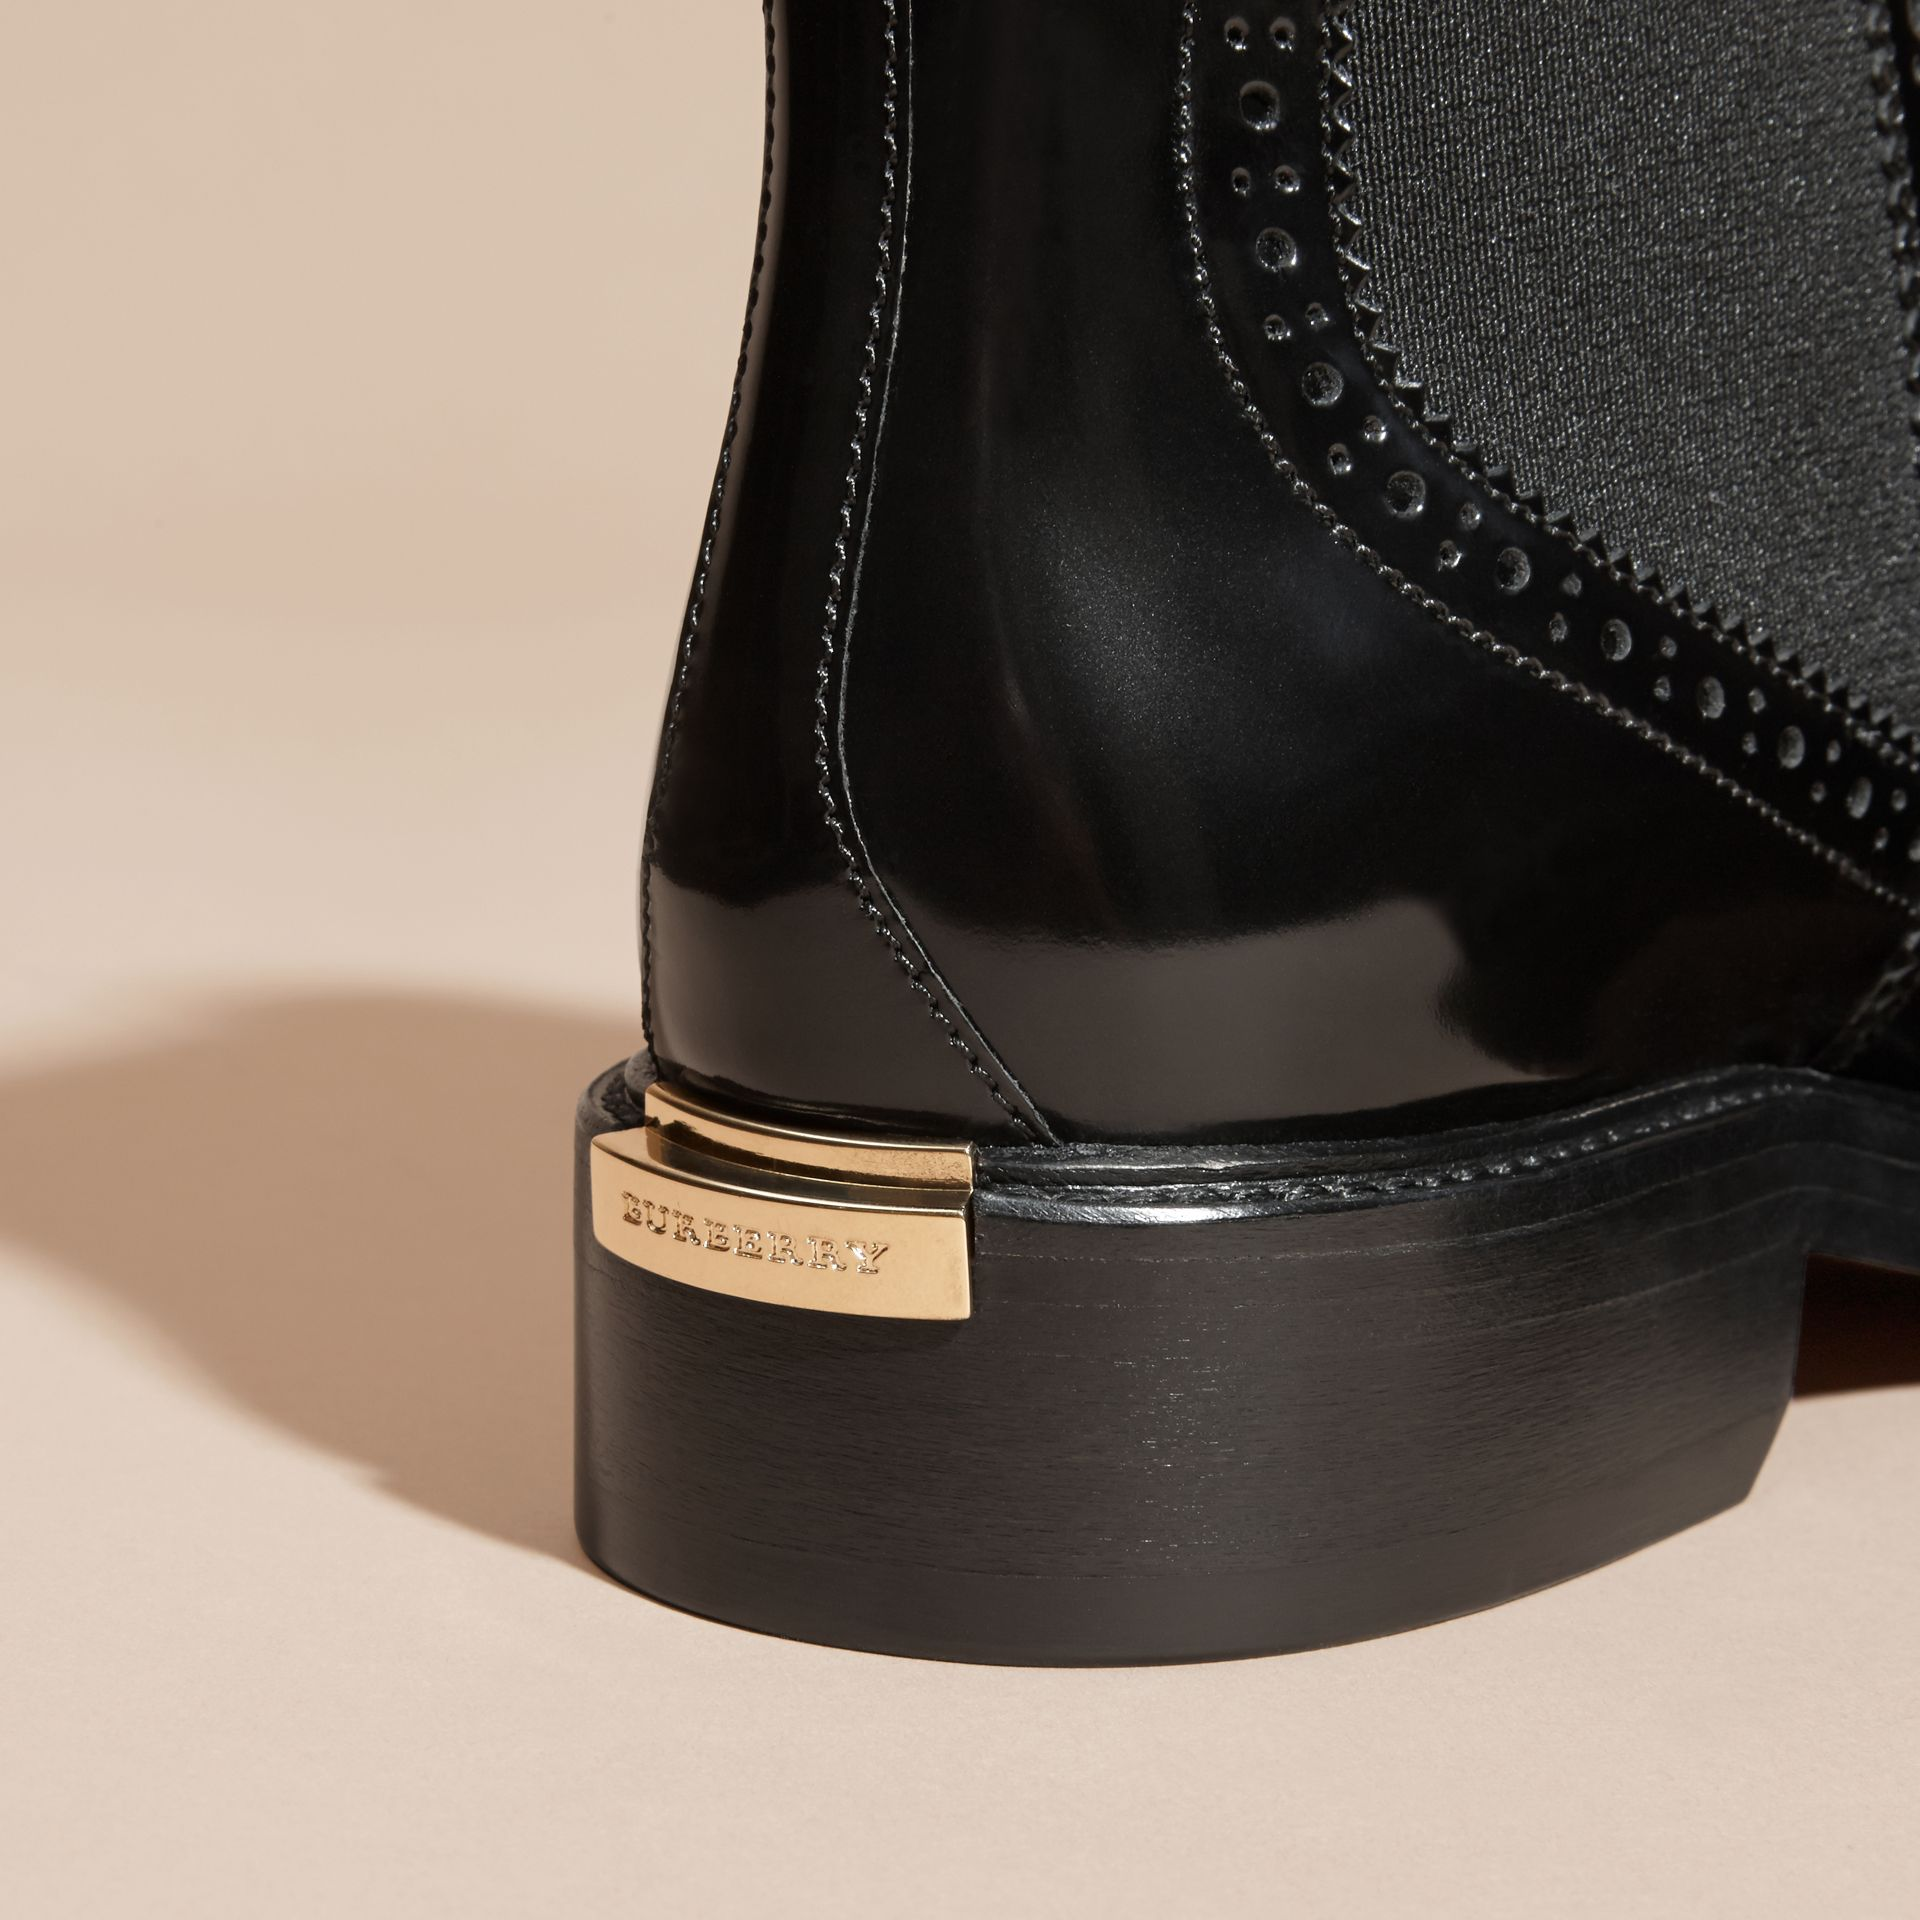 Leather Wingtip Chelsea Boots in Black - Women | Burberry - gallery image 2